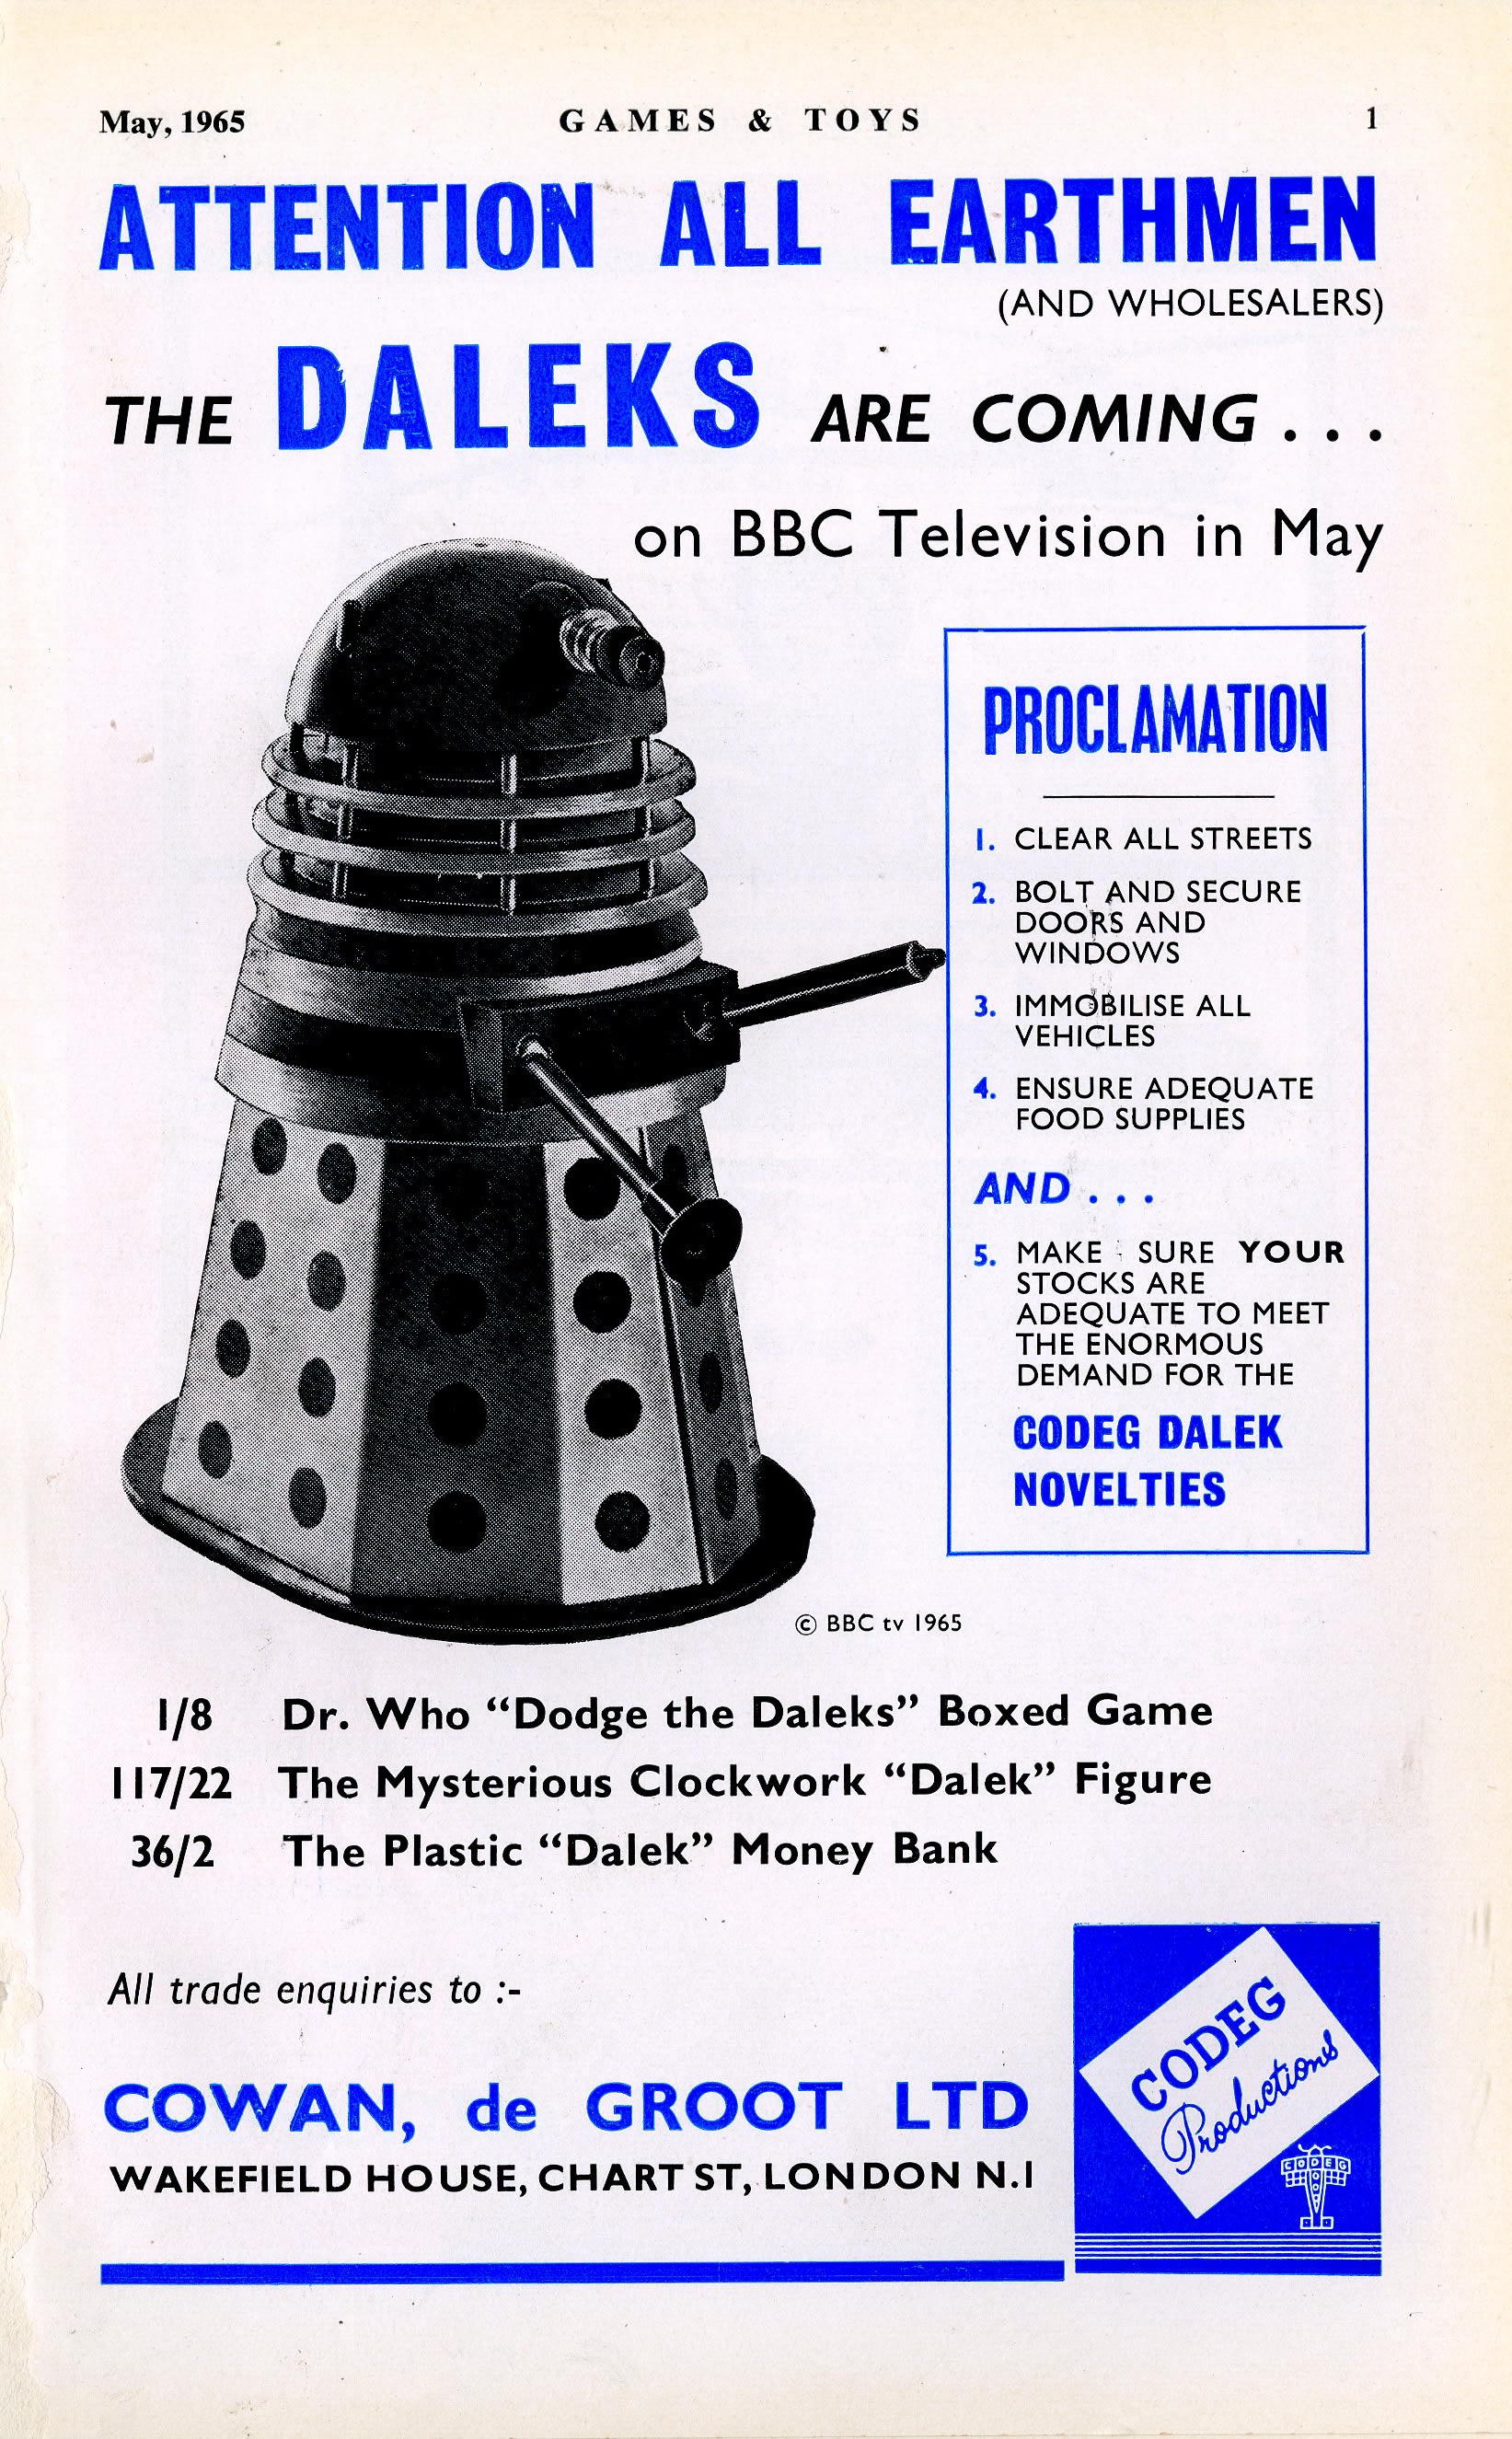 Games & Toys, May 1965, ad. for Cowan, de Groot featuring the Codeg mechanical Dalek